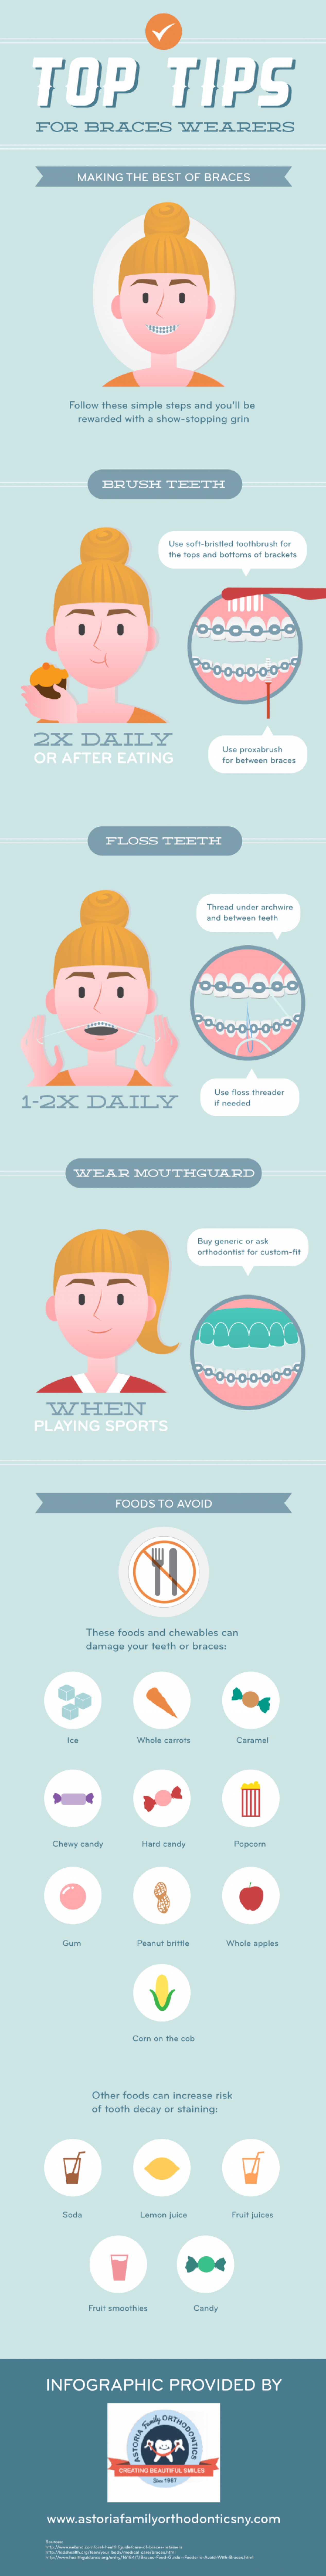 Top Tips for Braces Wearers Infographic